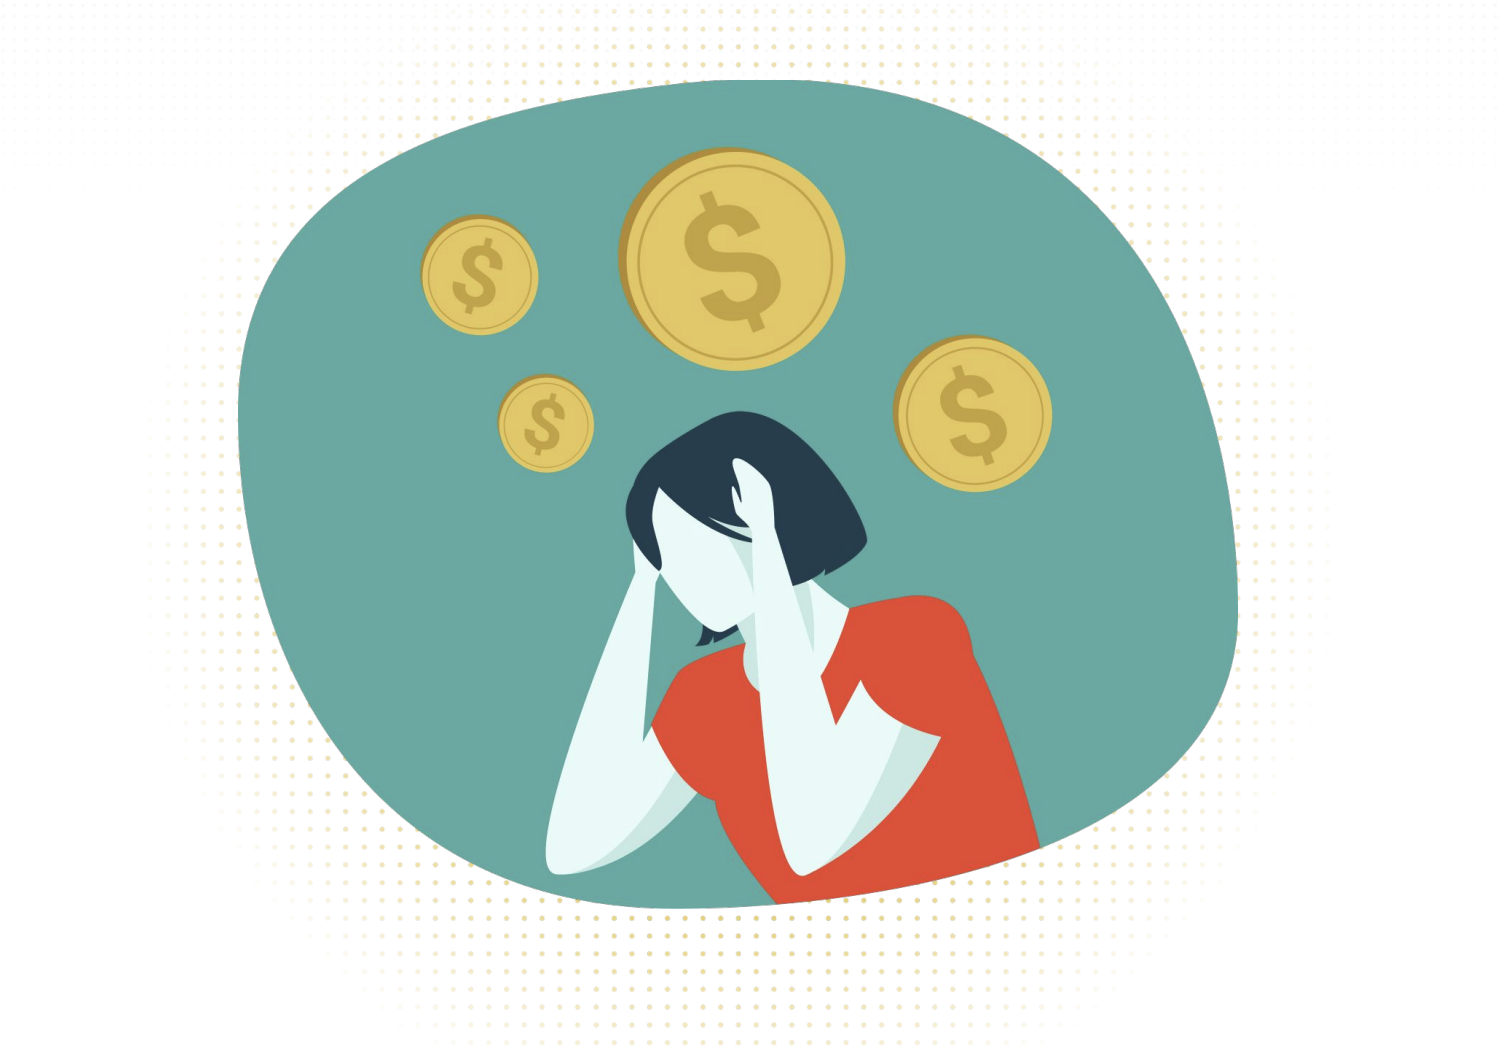 Woman in a red shirt stressed about her financial wellbeing